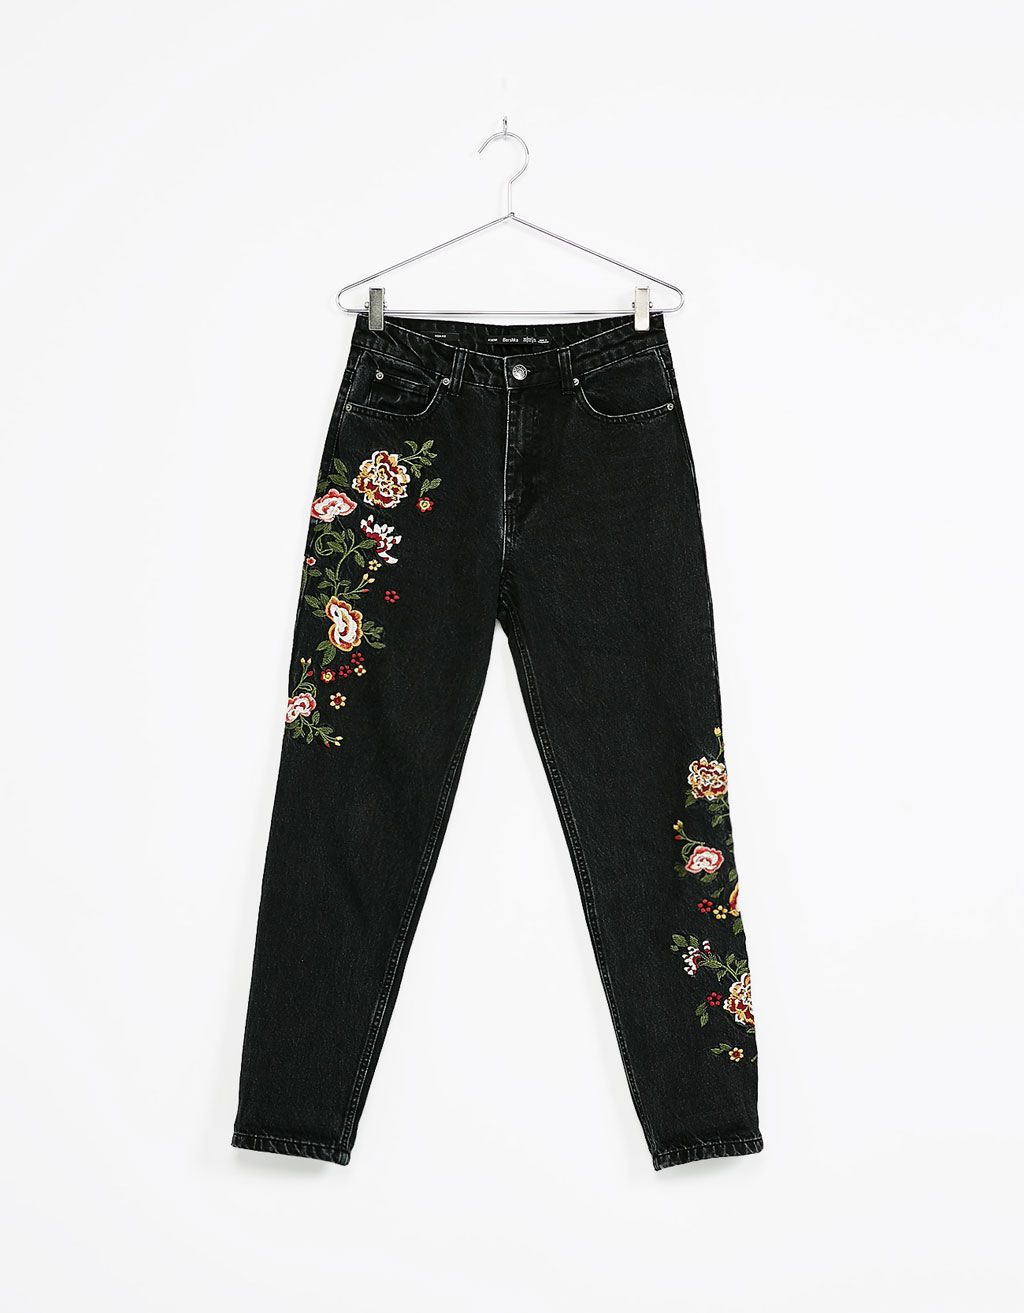 buy popular d86f7 f38ca High waist embroidered jeans - Embroidery - Bershka Ukraine